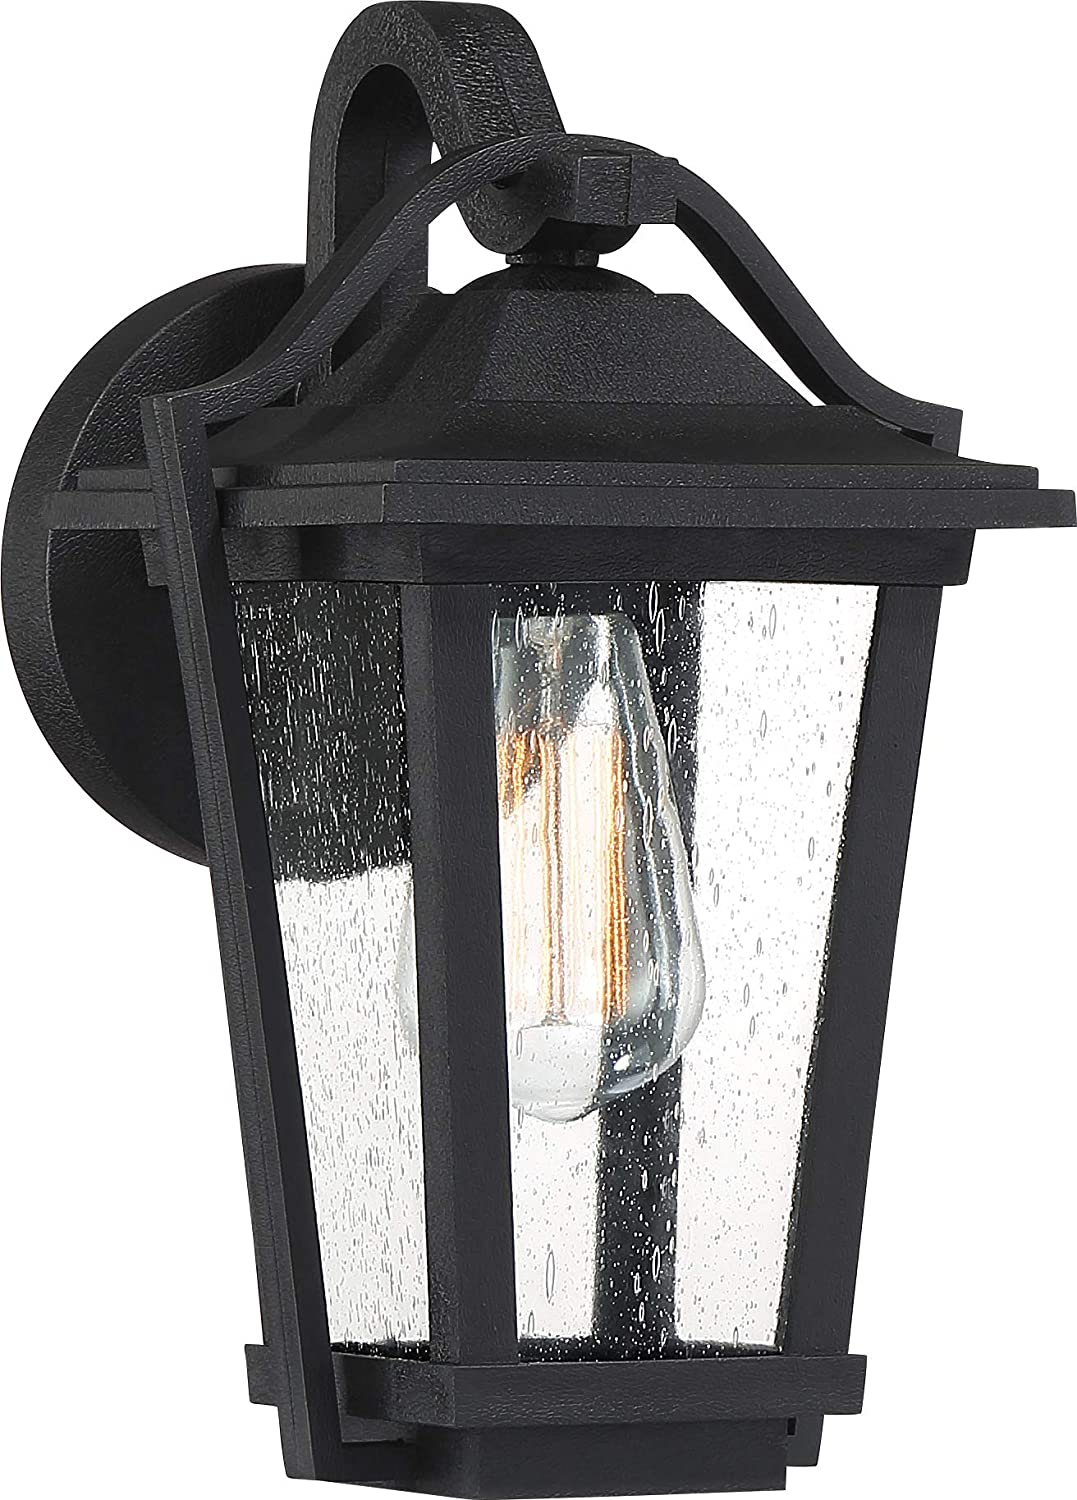 Quoizel DRS8407EK Darius Outdoor Wall Lantern Wall Sconce Lighting Fixture, 1-Light, 100 Watt, Earth Black (12